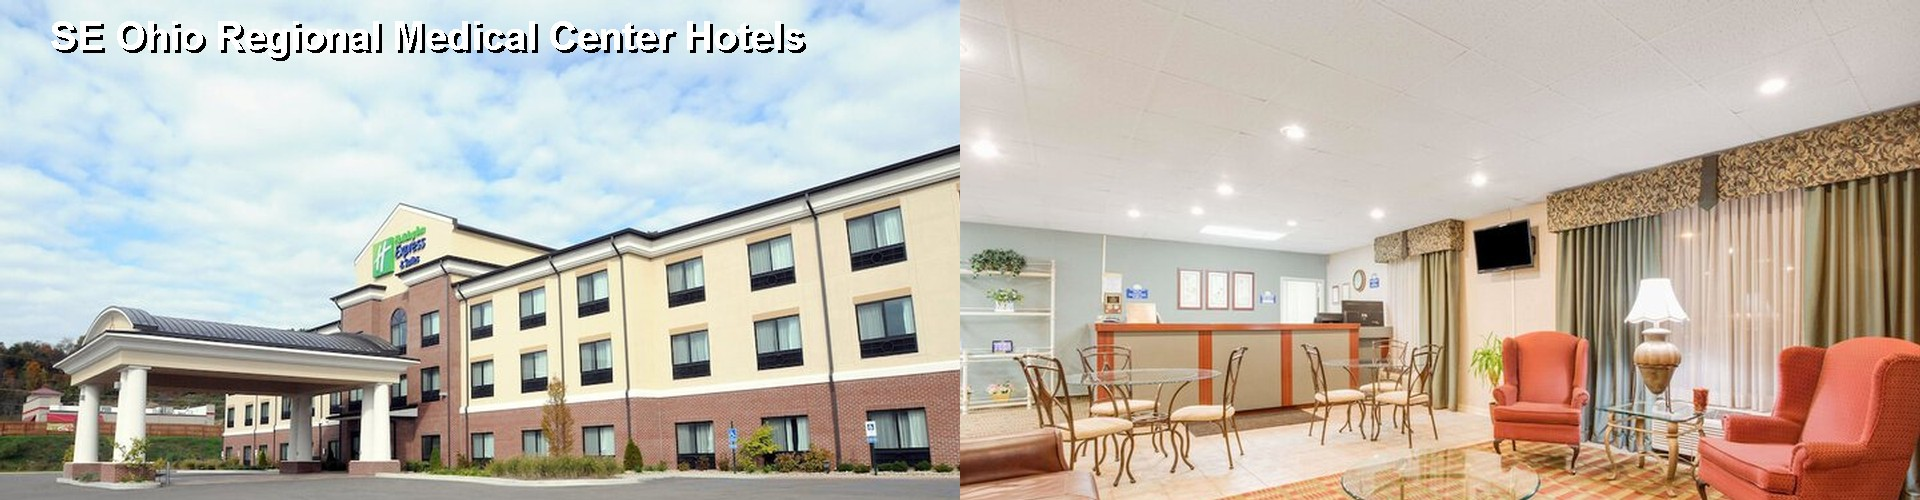 5 Best Hotels near SE Ohio Regional Medical Center